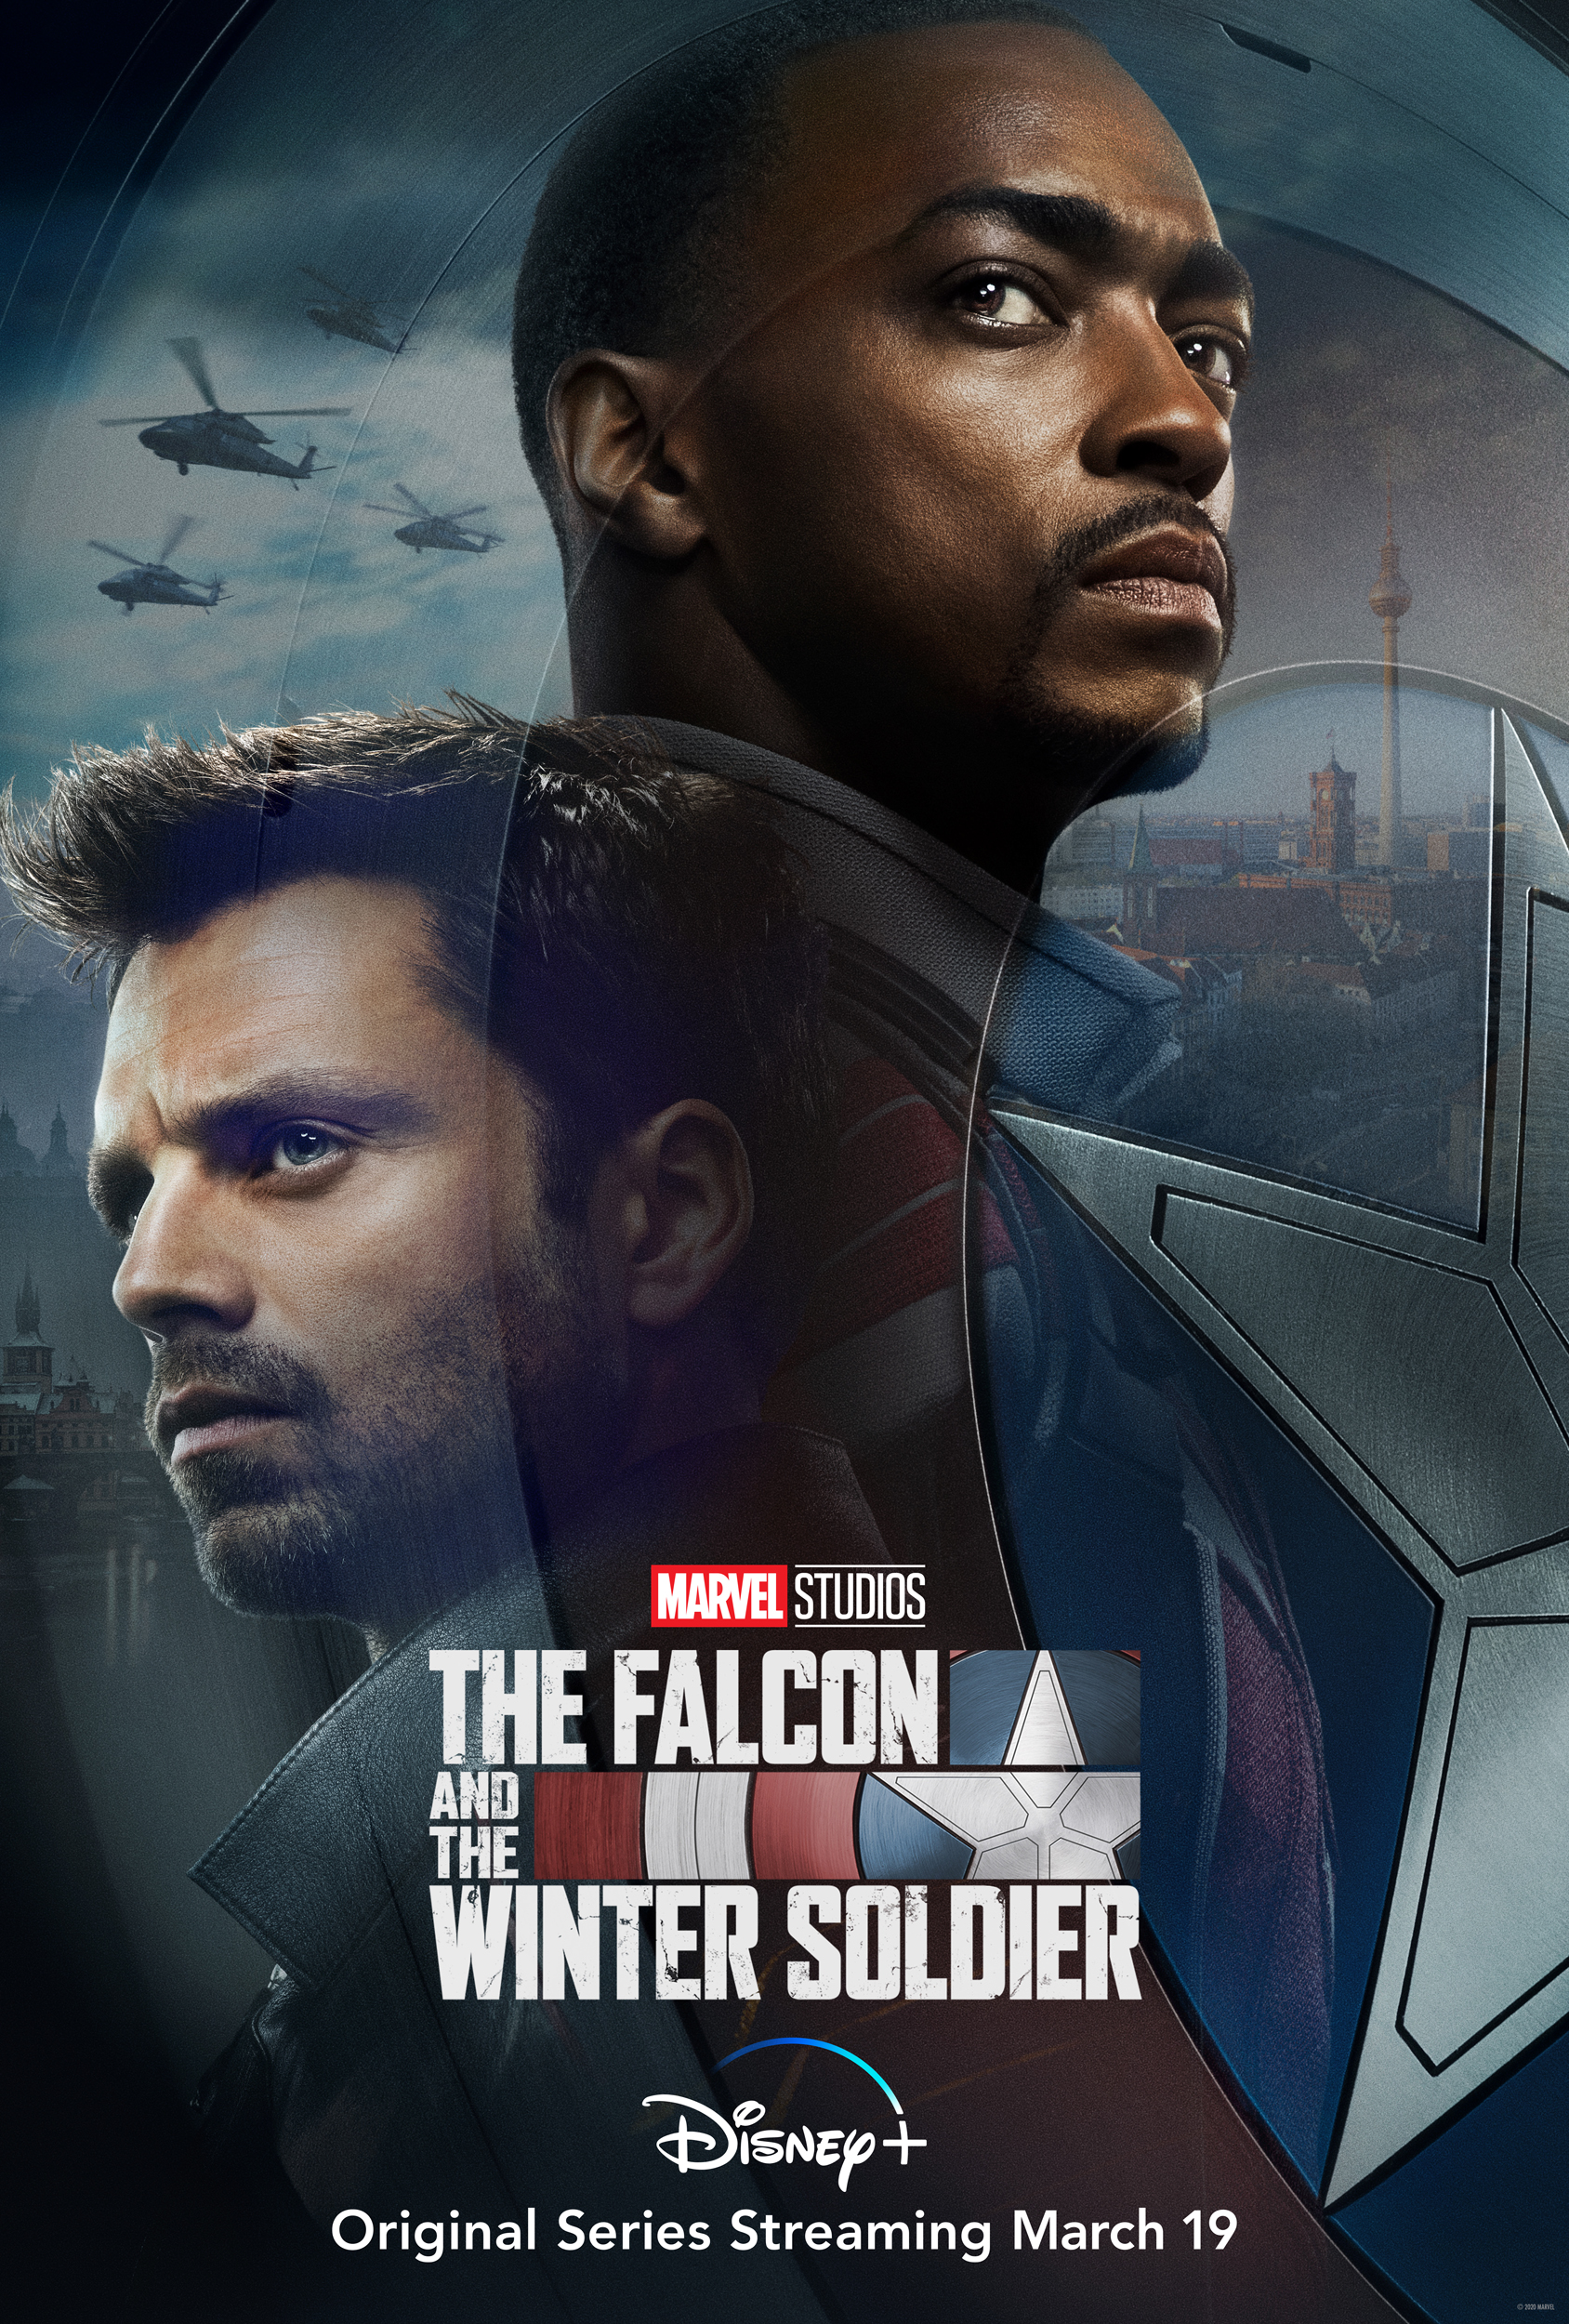 First Look: The Falcon And The Winter Soldier Starring Anthony Mackie